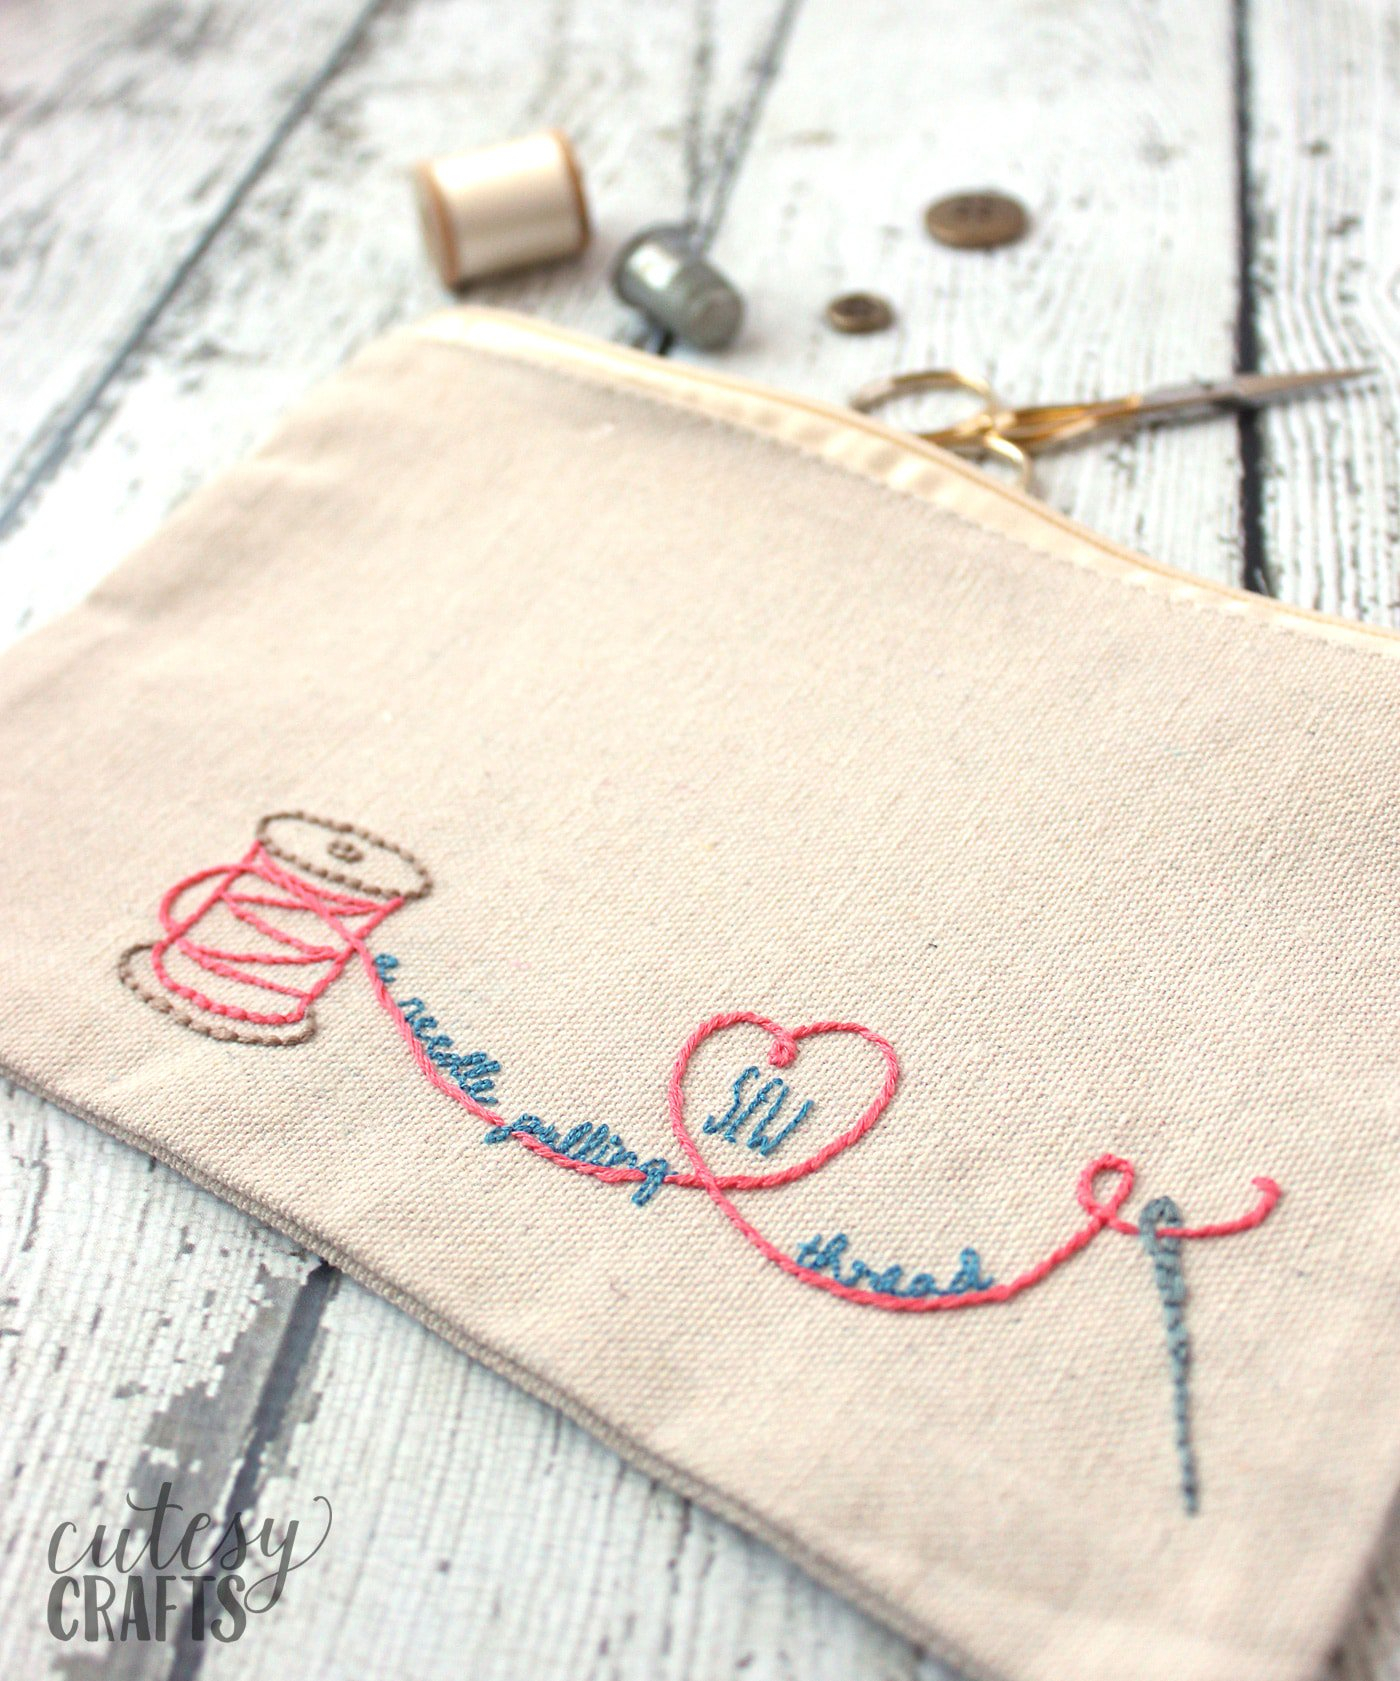 How To Design Embroidery Patterns By Hand Adorable Diy Sew A Needle Pulling Thread Bag Free Hand